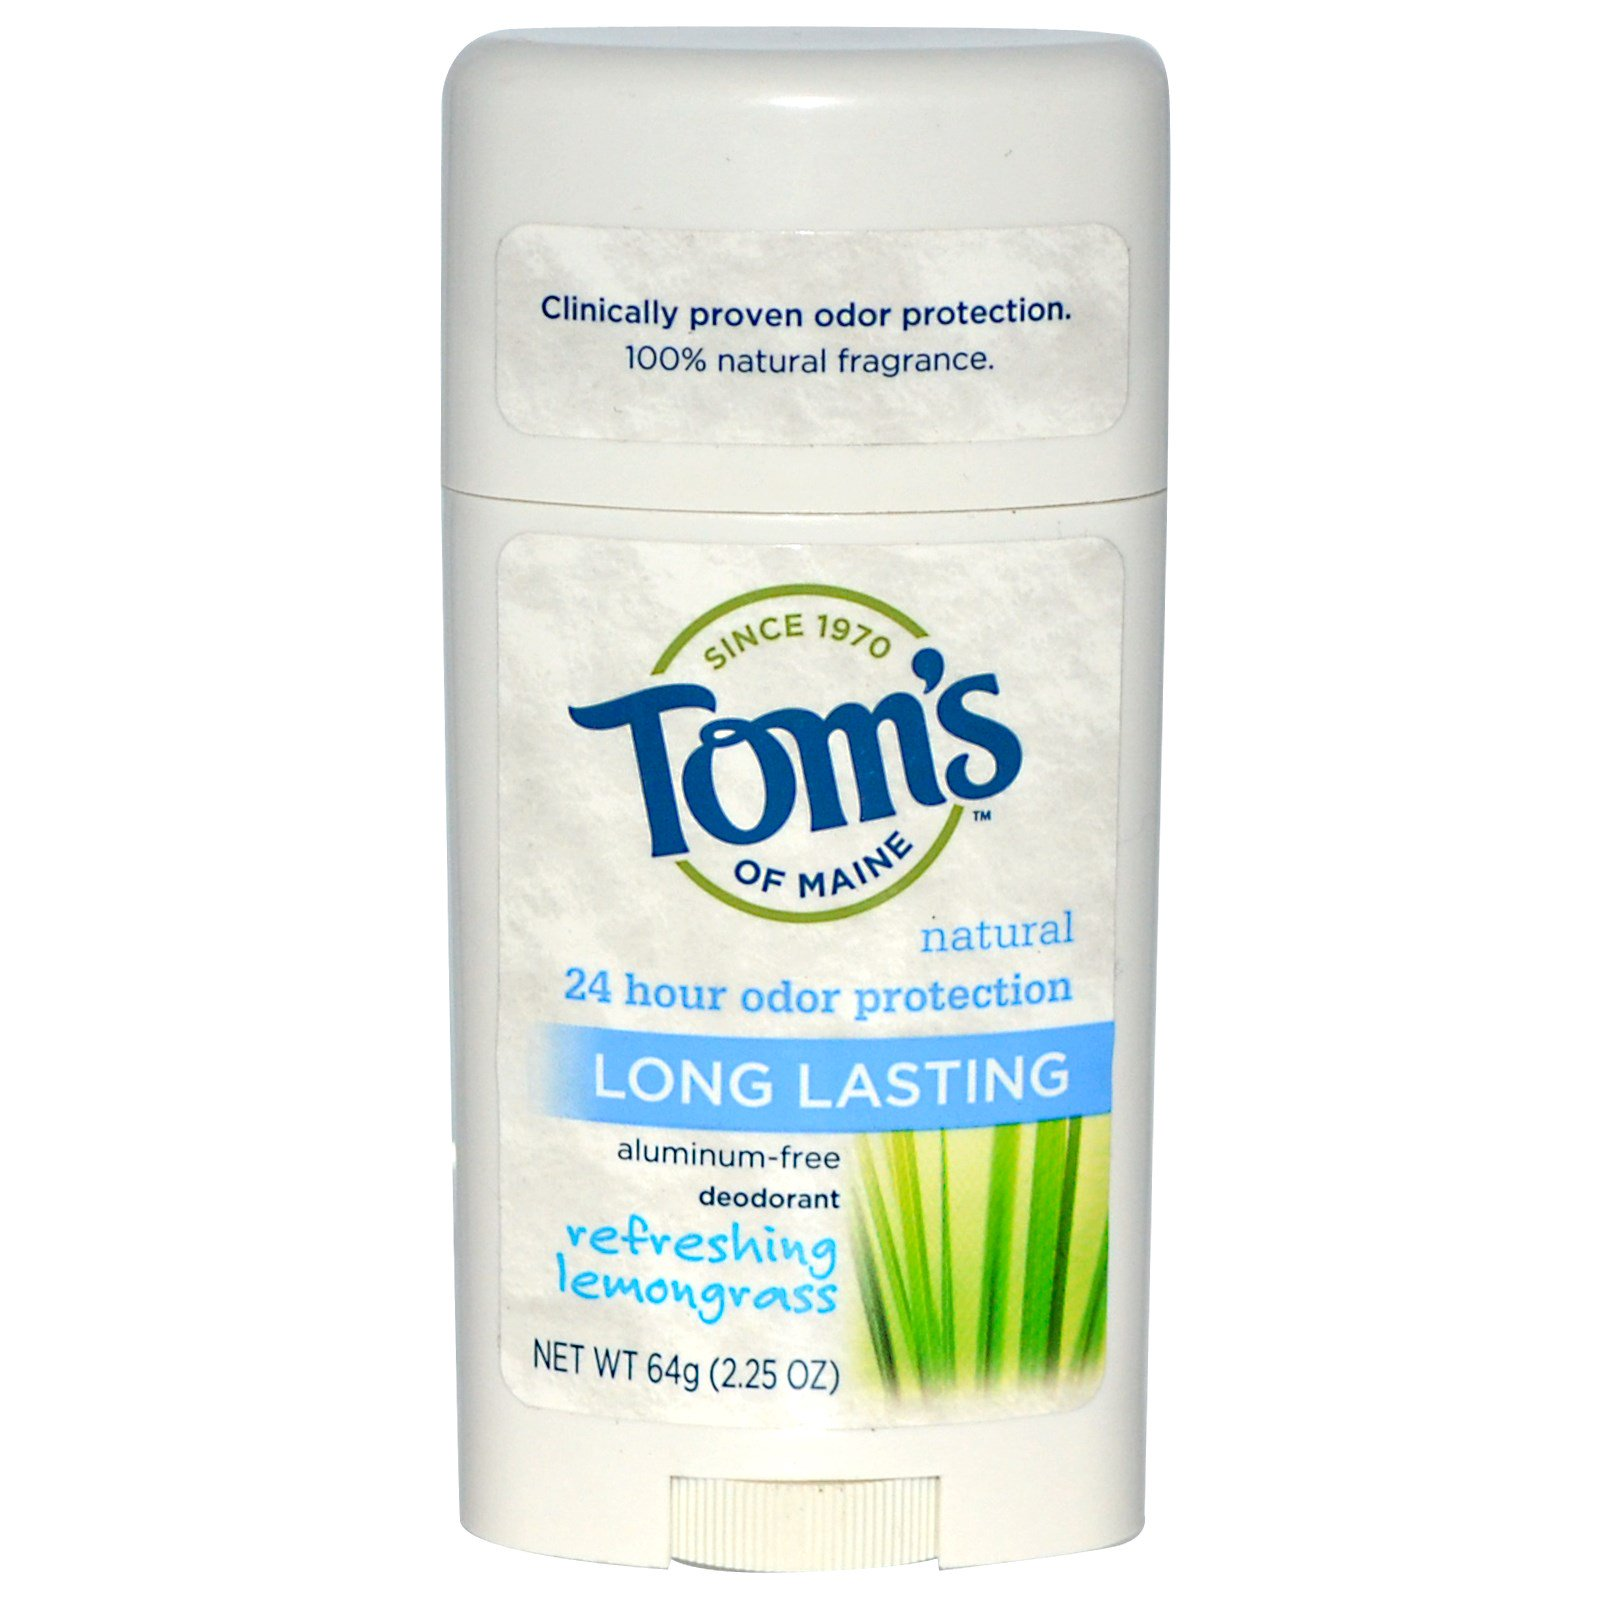 tom 39 s of maine natural long lasting deodorant aluminum free refreshing lemongrass oz. Black Bedroom Furniture Sets. Home Design Ideas